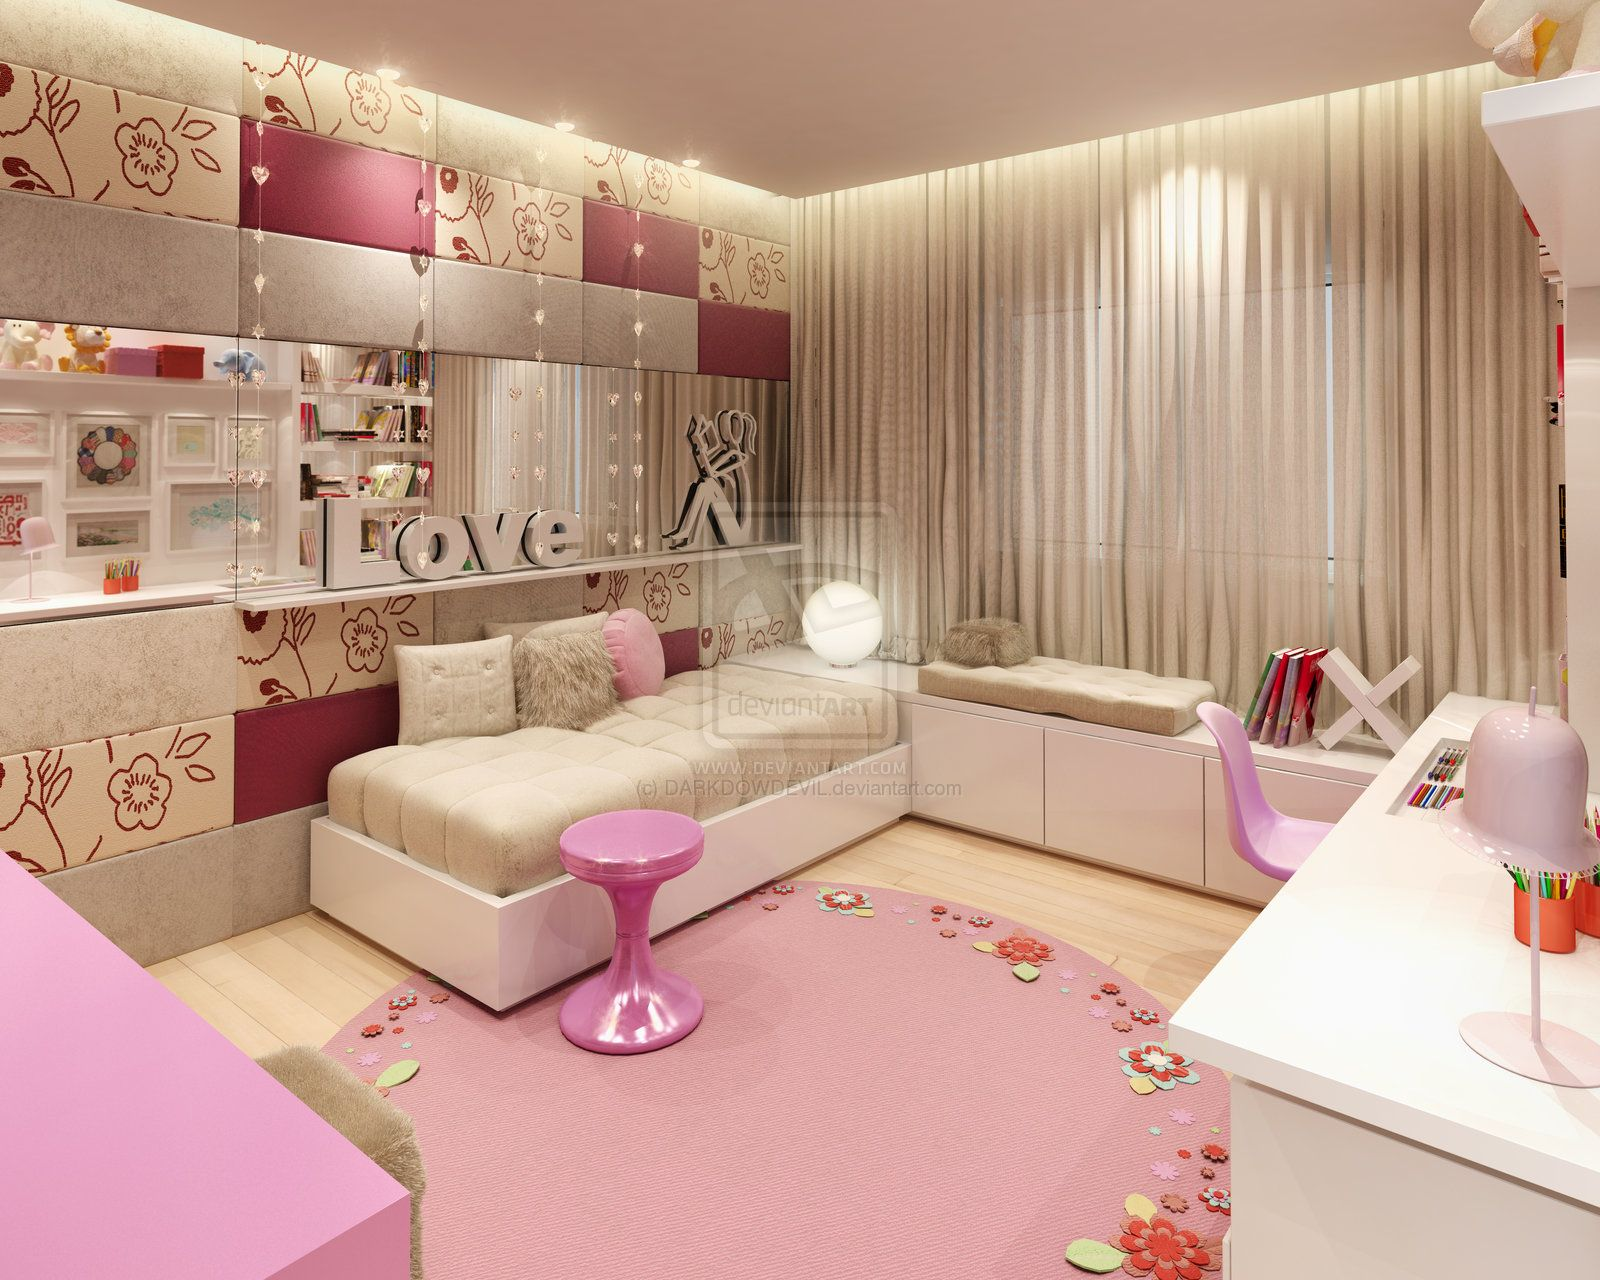 Teen Girls Bedrooms 30 Dream Interior Design Ideas For Teenage Girl's Rooms  Bedrooms